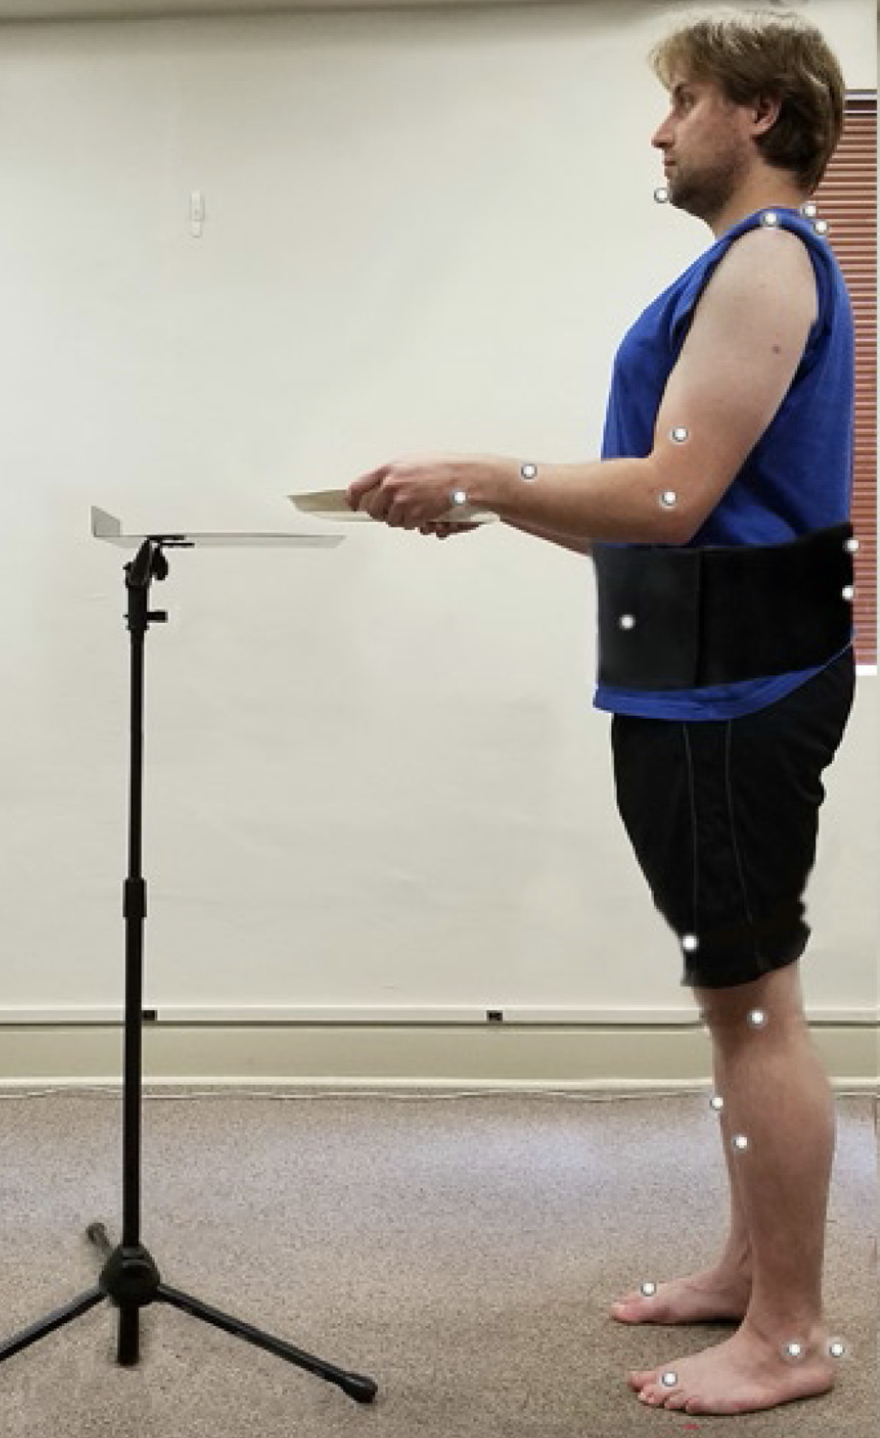 Figure 2: A study participant wearing reflective dots tracked by the 3D motion capture camera system. In the first task, participants walked 2 meters carrying a tray, and set it down at elbow height. The researchers began collecting data 3-seconds before the subject started walking. They were curious to see if forward head posture increased in anticipation of walking.